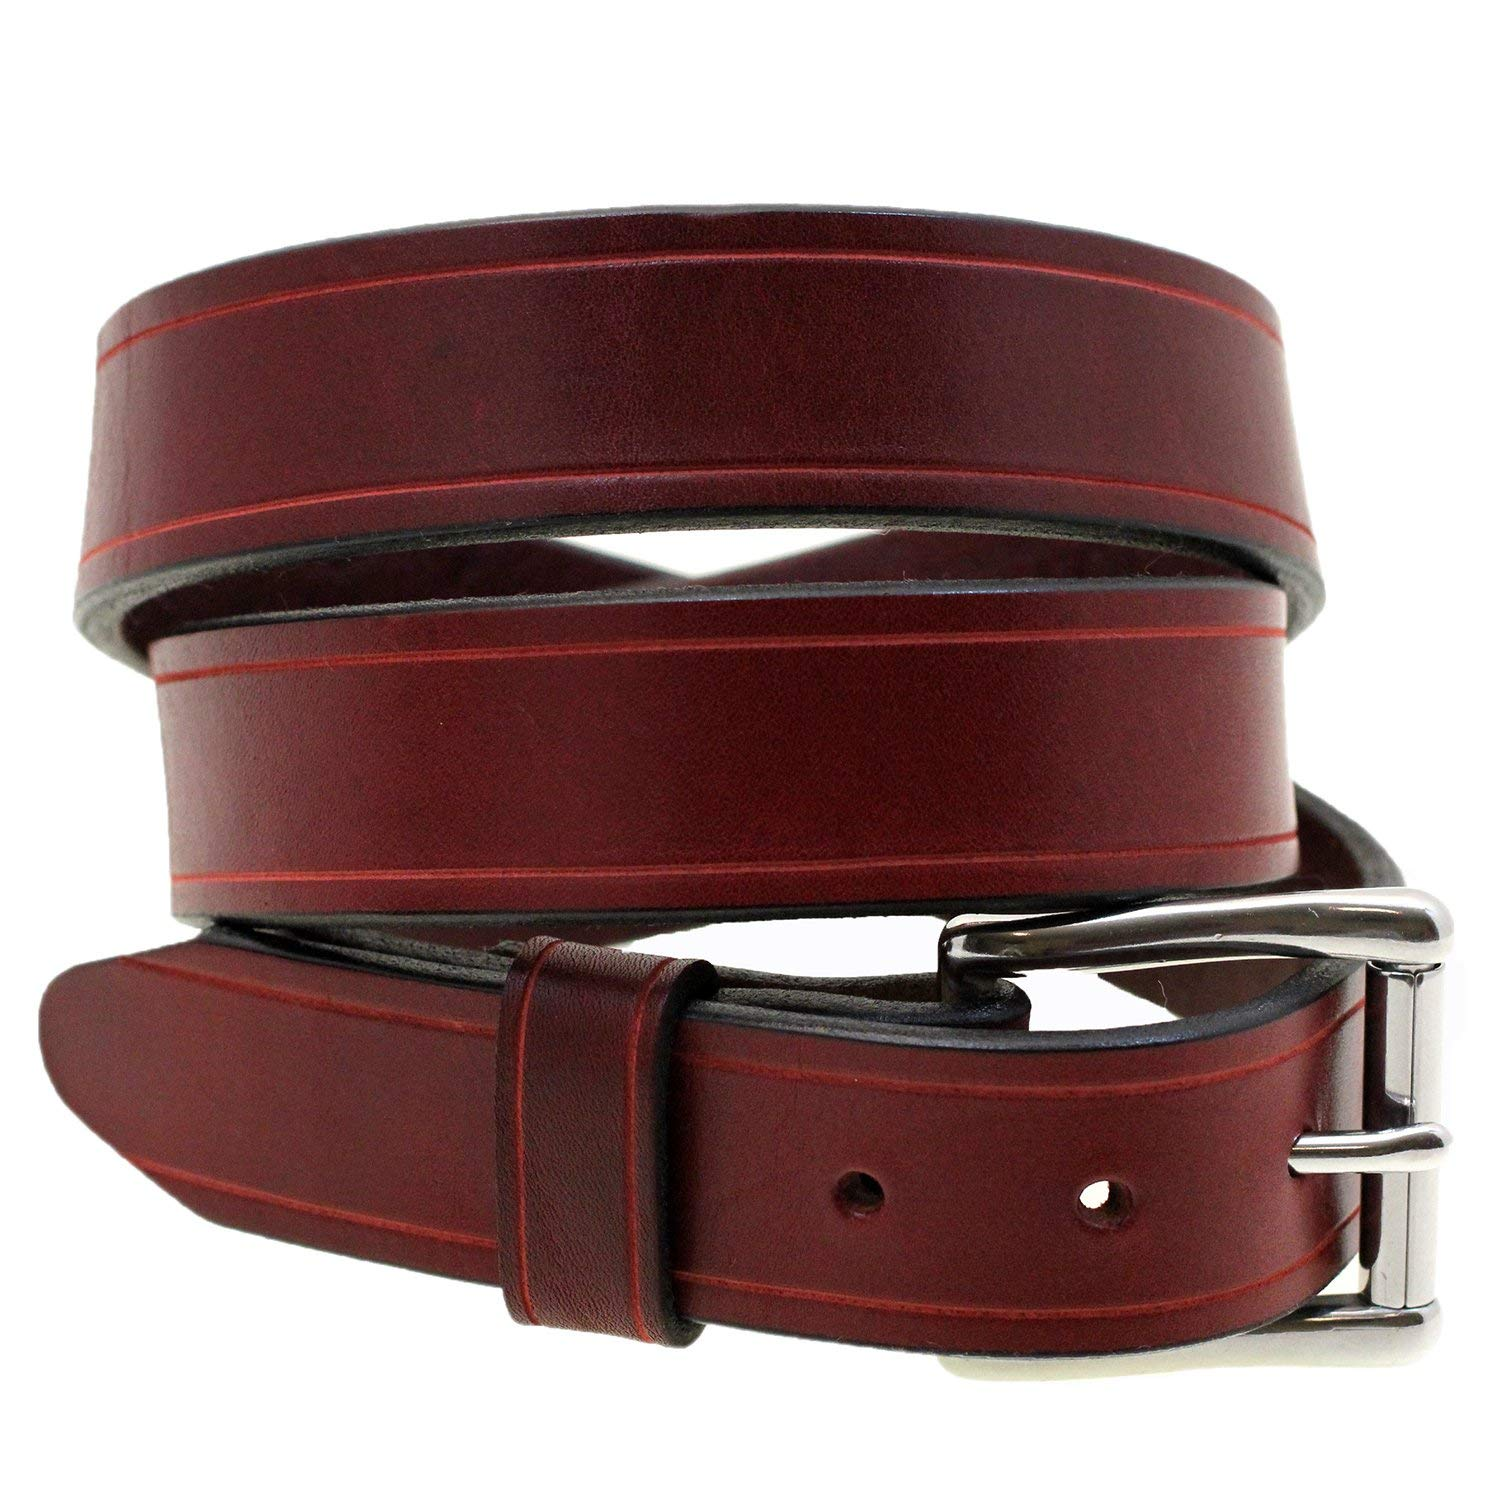 da4b465d674 Buy TANNER GOODS MADE IN USA LEATHER SKINNY BELT IN SADDLE TAN AND ...